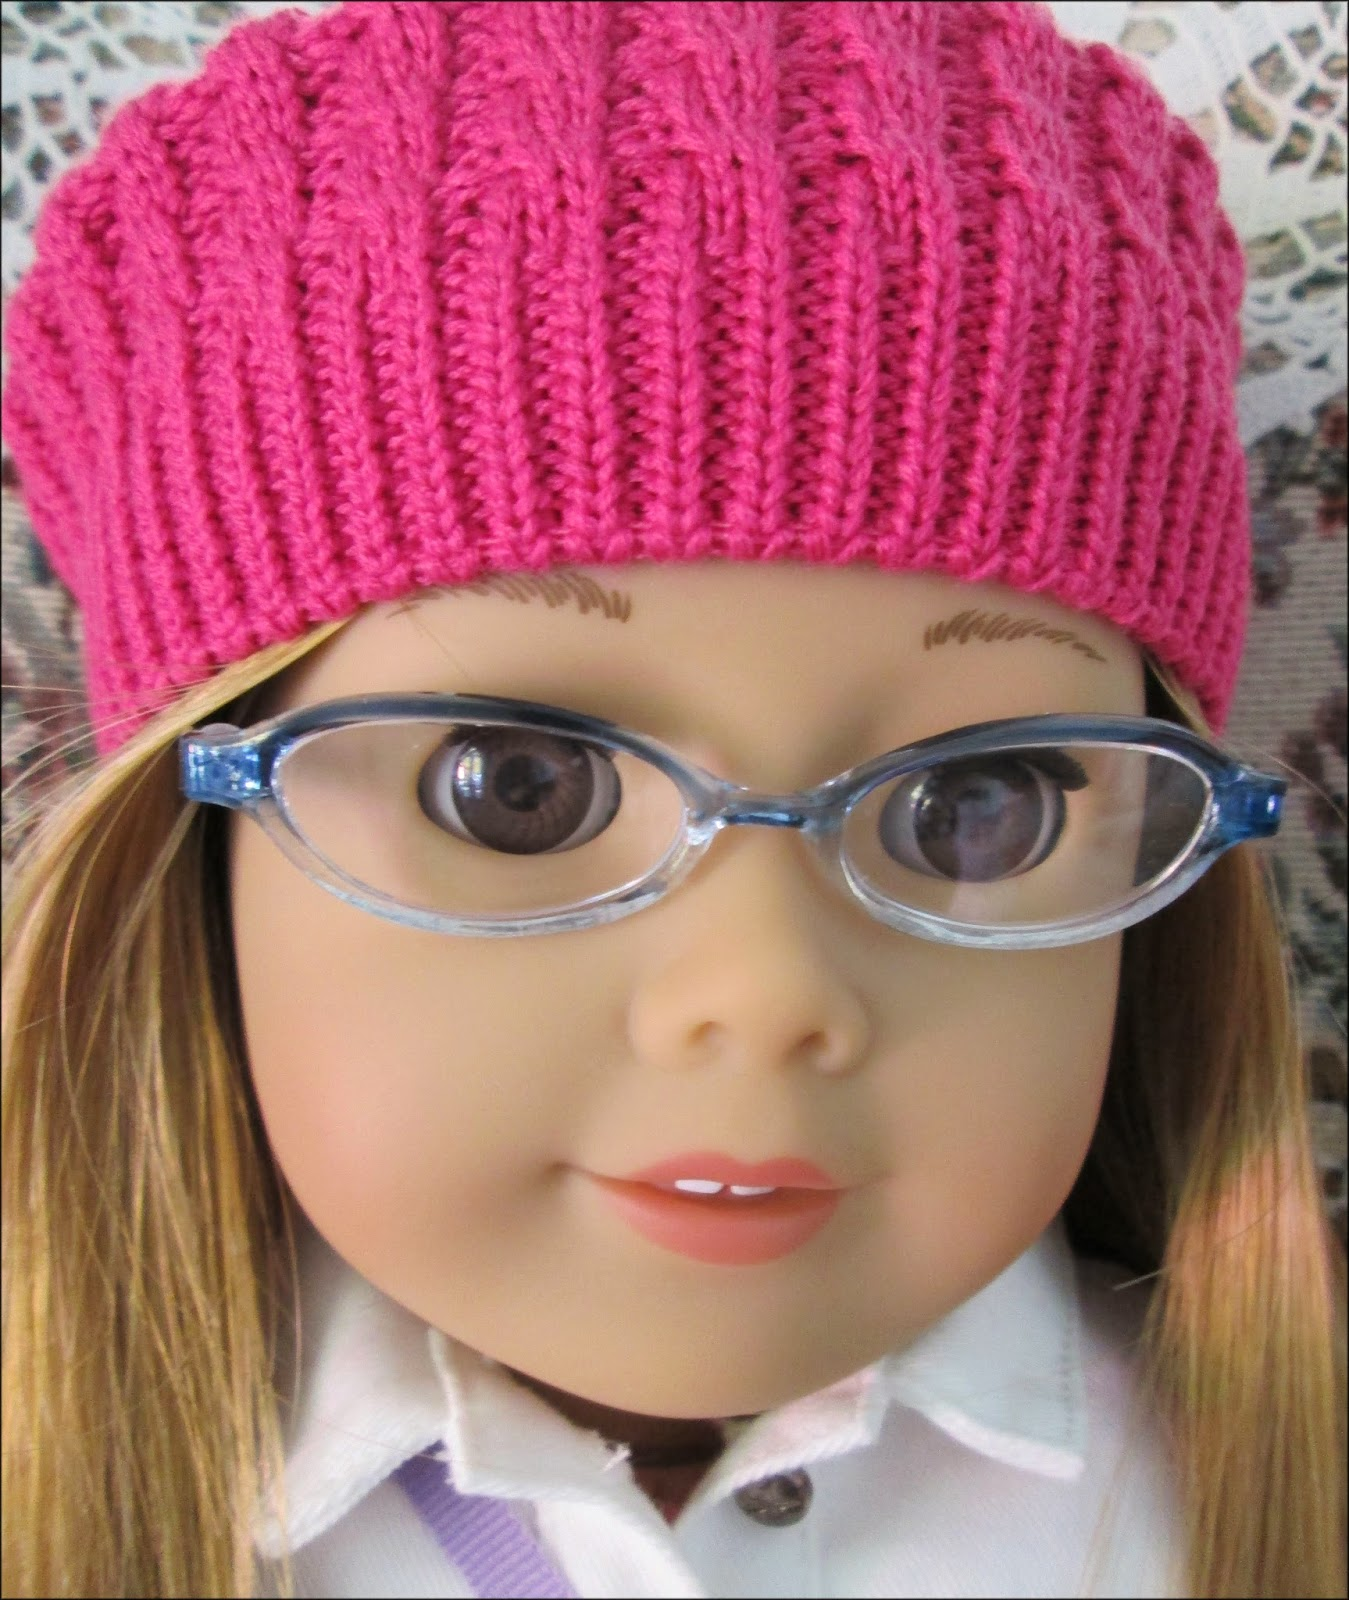 do you see that cute raspberry beret american girl 35 is wearing i